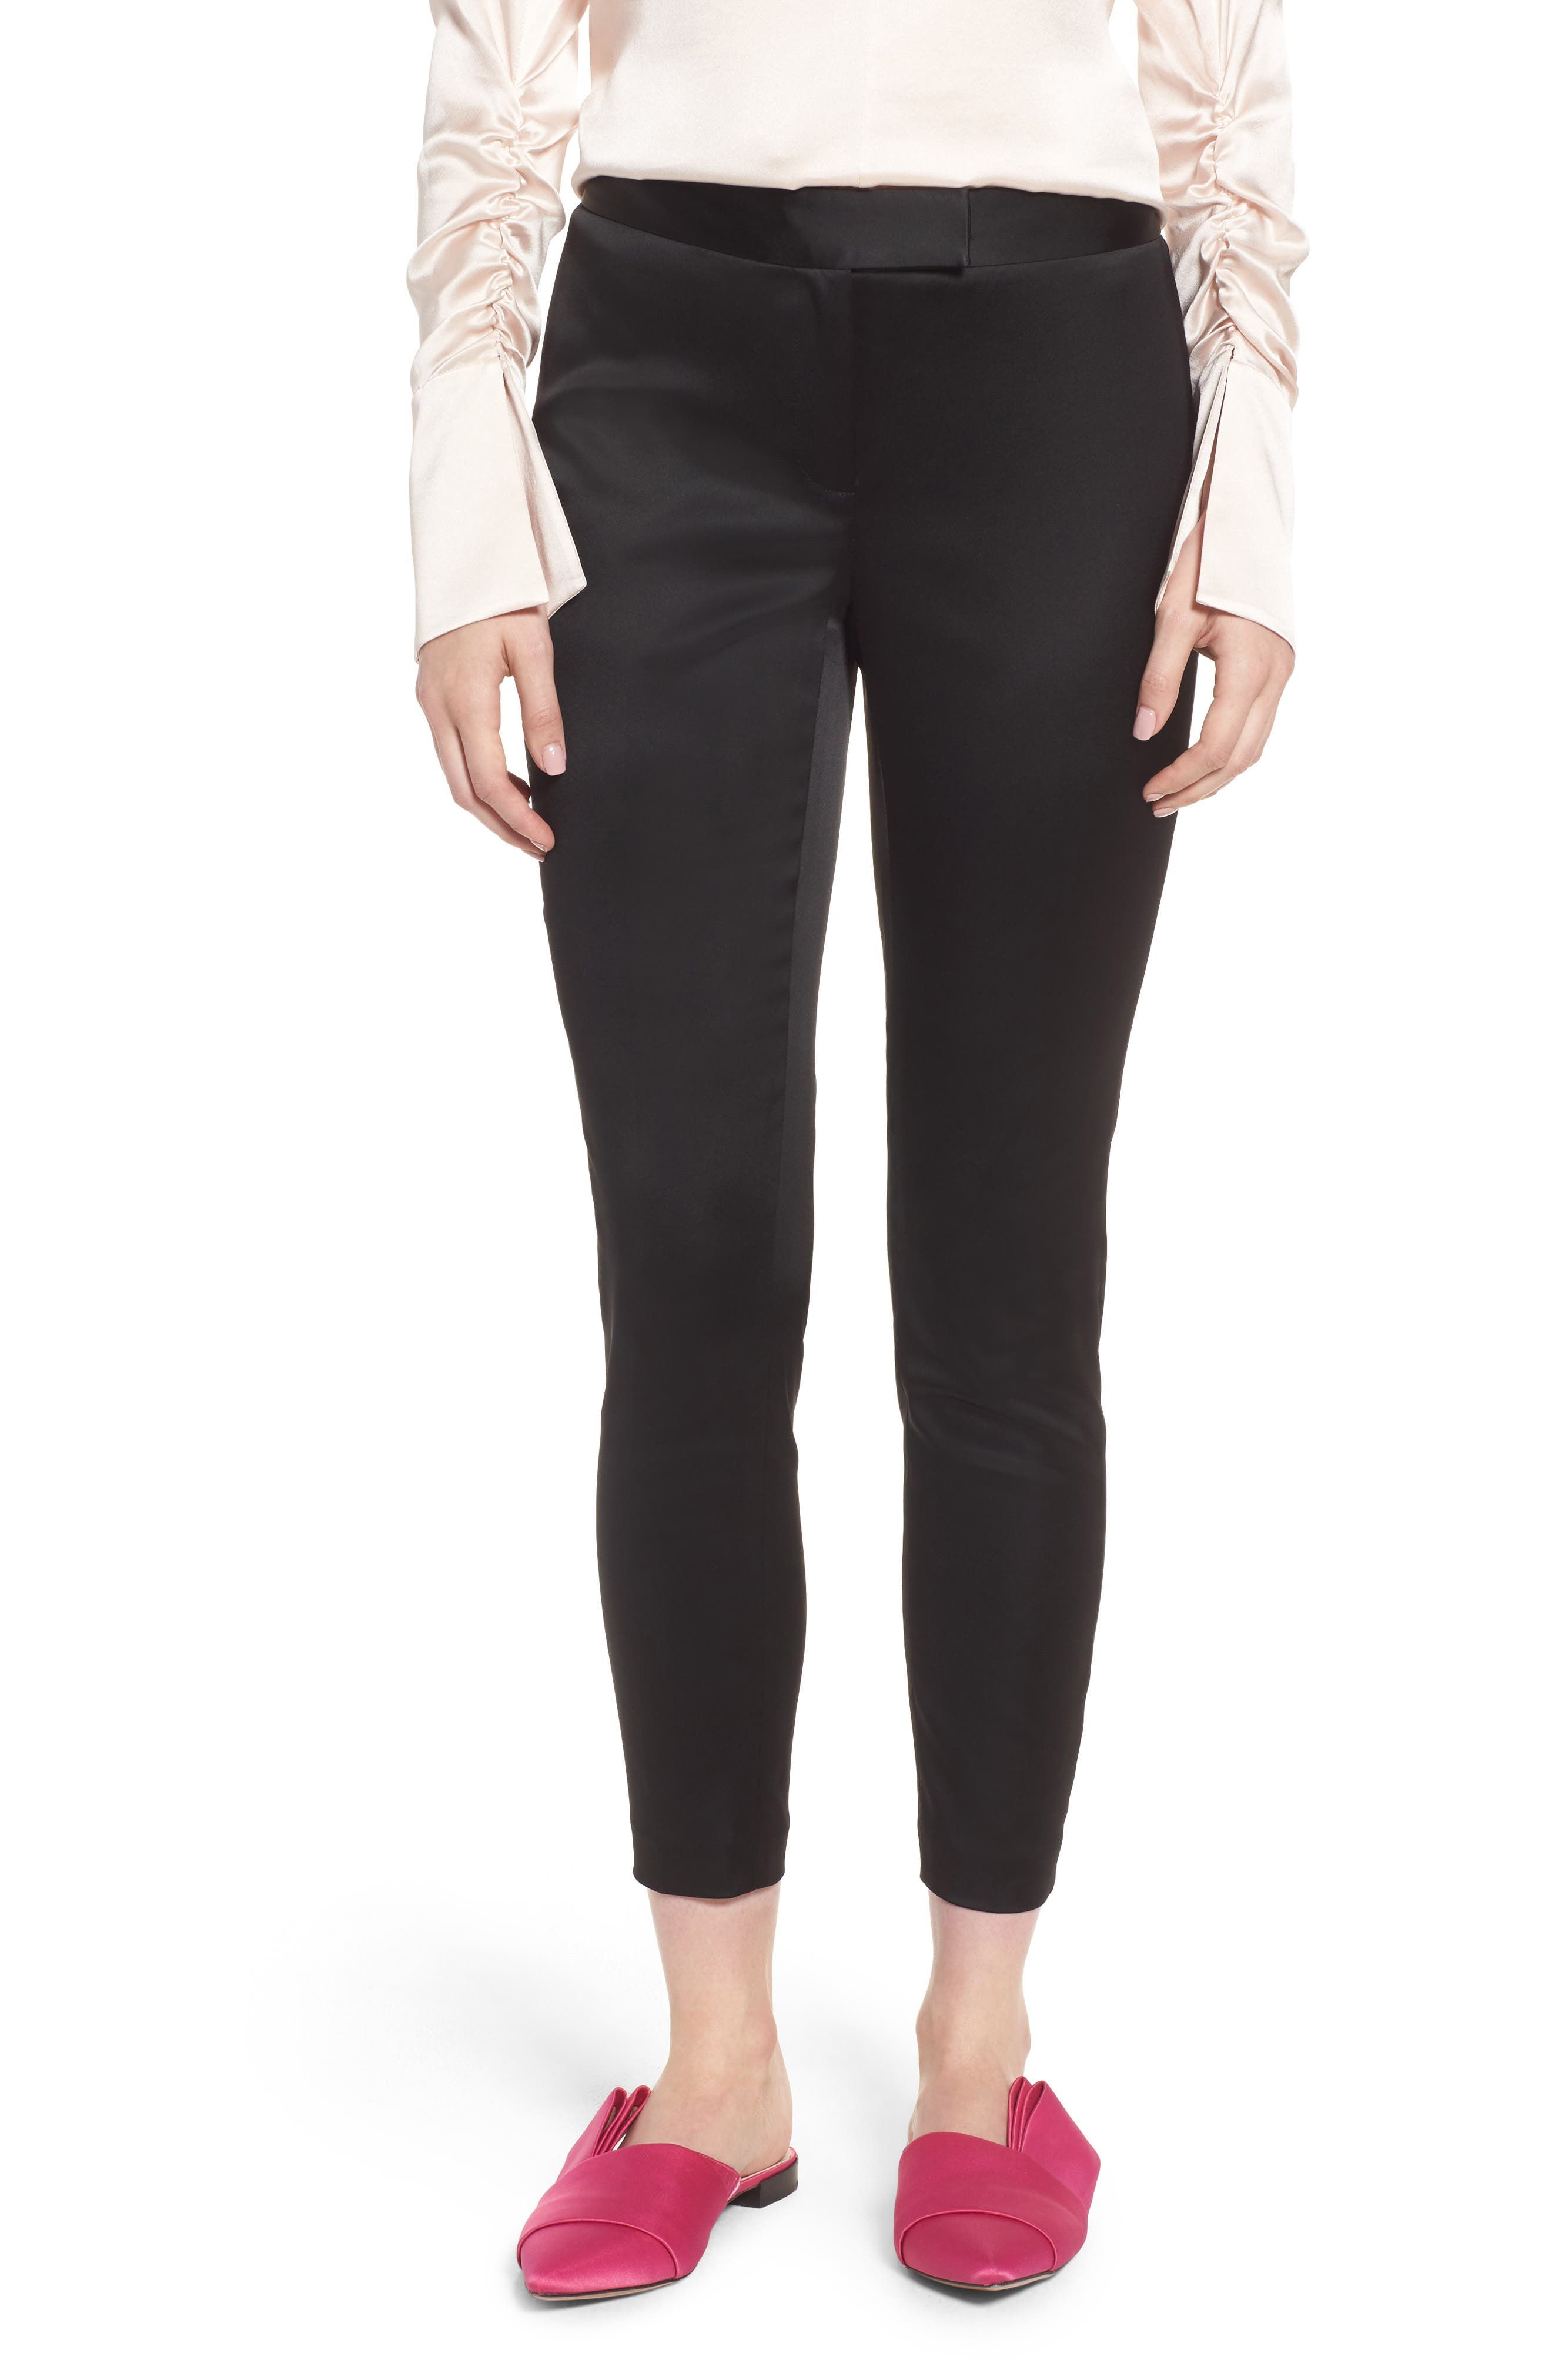 Main Image - Lewit Stretch Satin Skinny Trousers